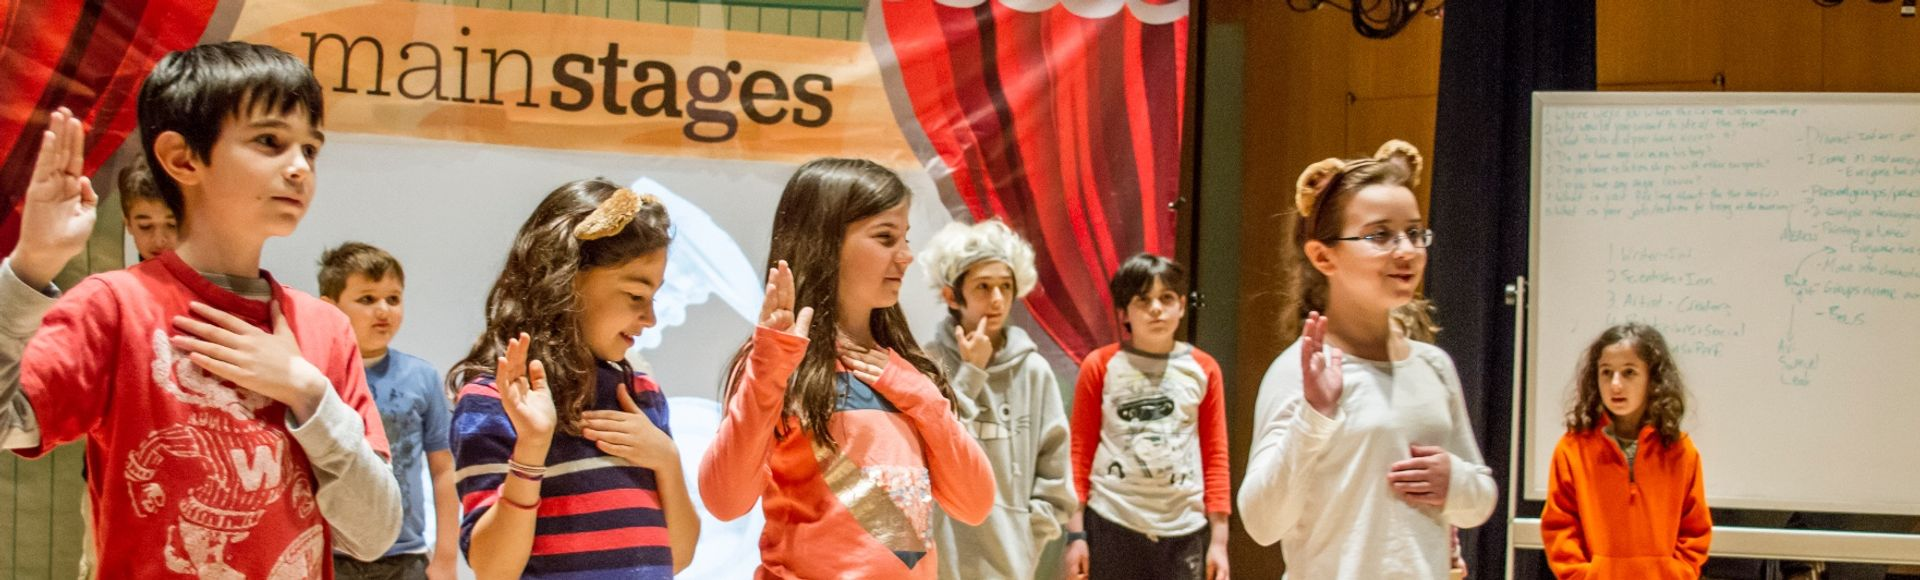 children during mainstages theater performance